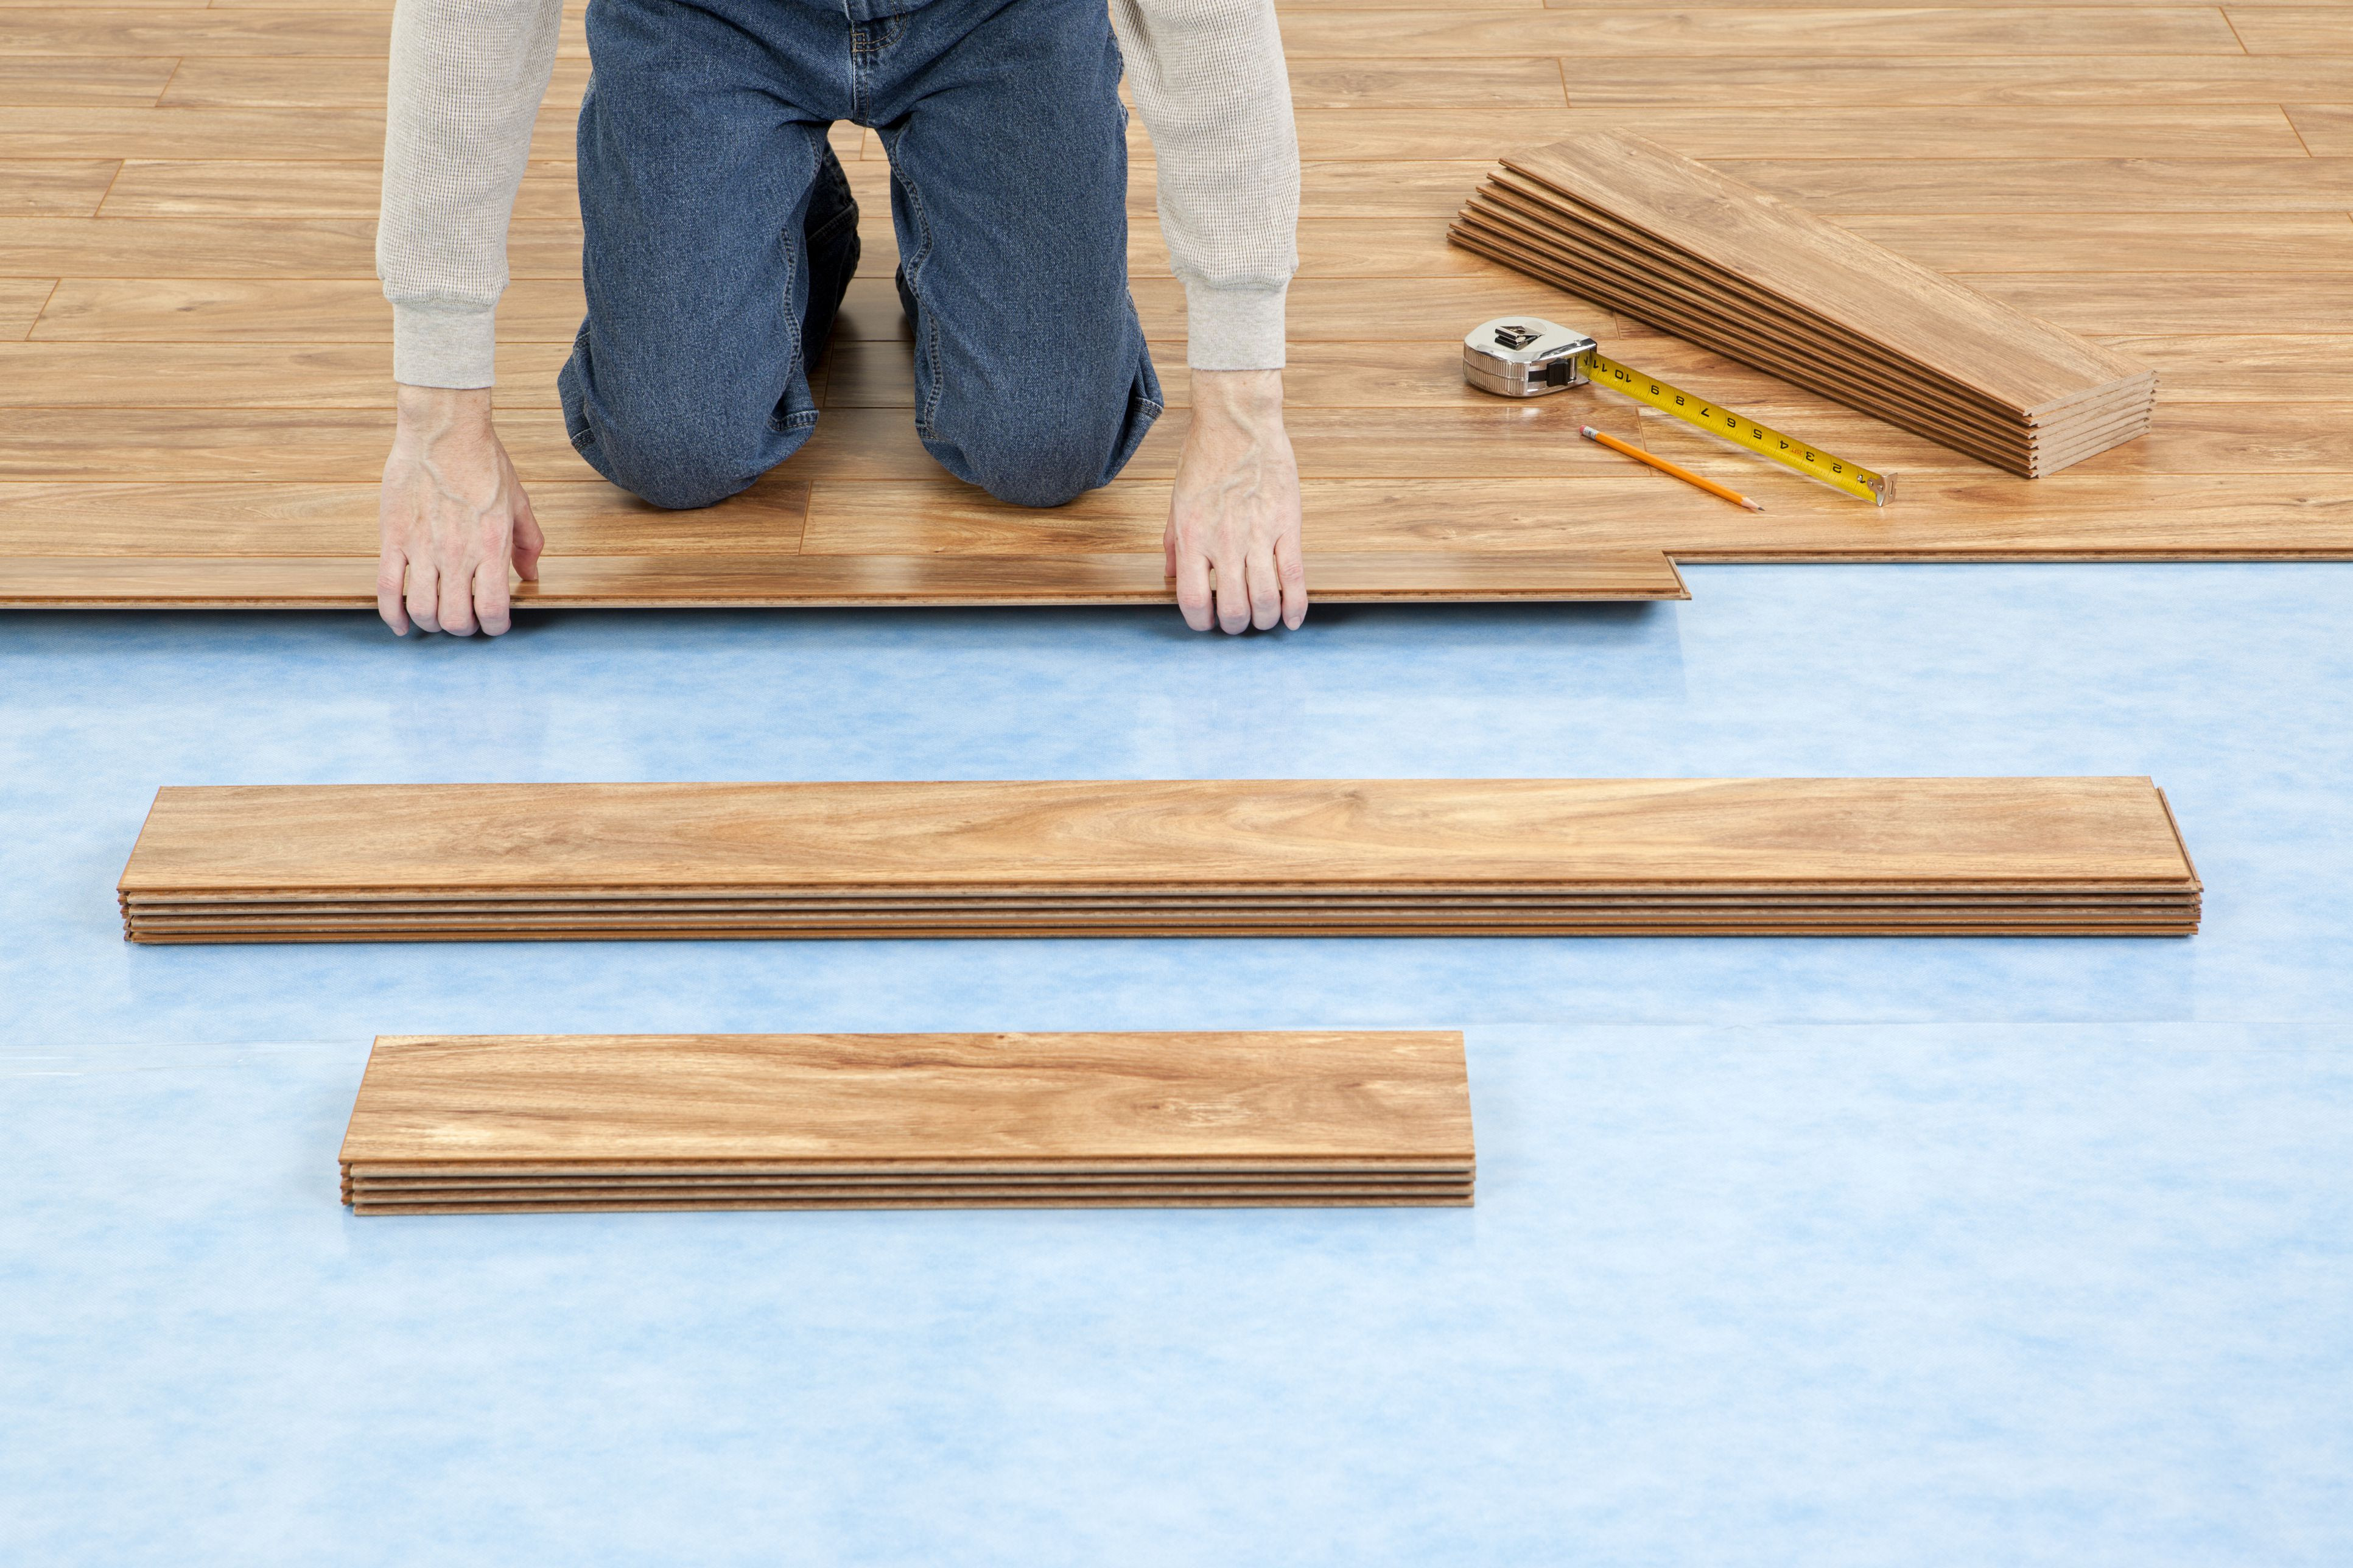 Hardwood Flooring Sales and Installation Of Installing Laminate Flooring with attached Underlayment Inside New Floor Installation 155283725 582735c03df78c6f6af8ac80